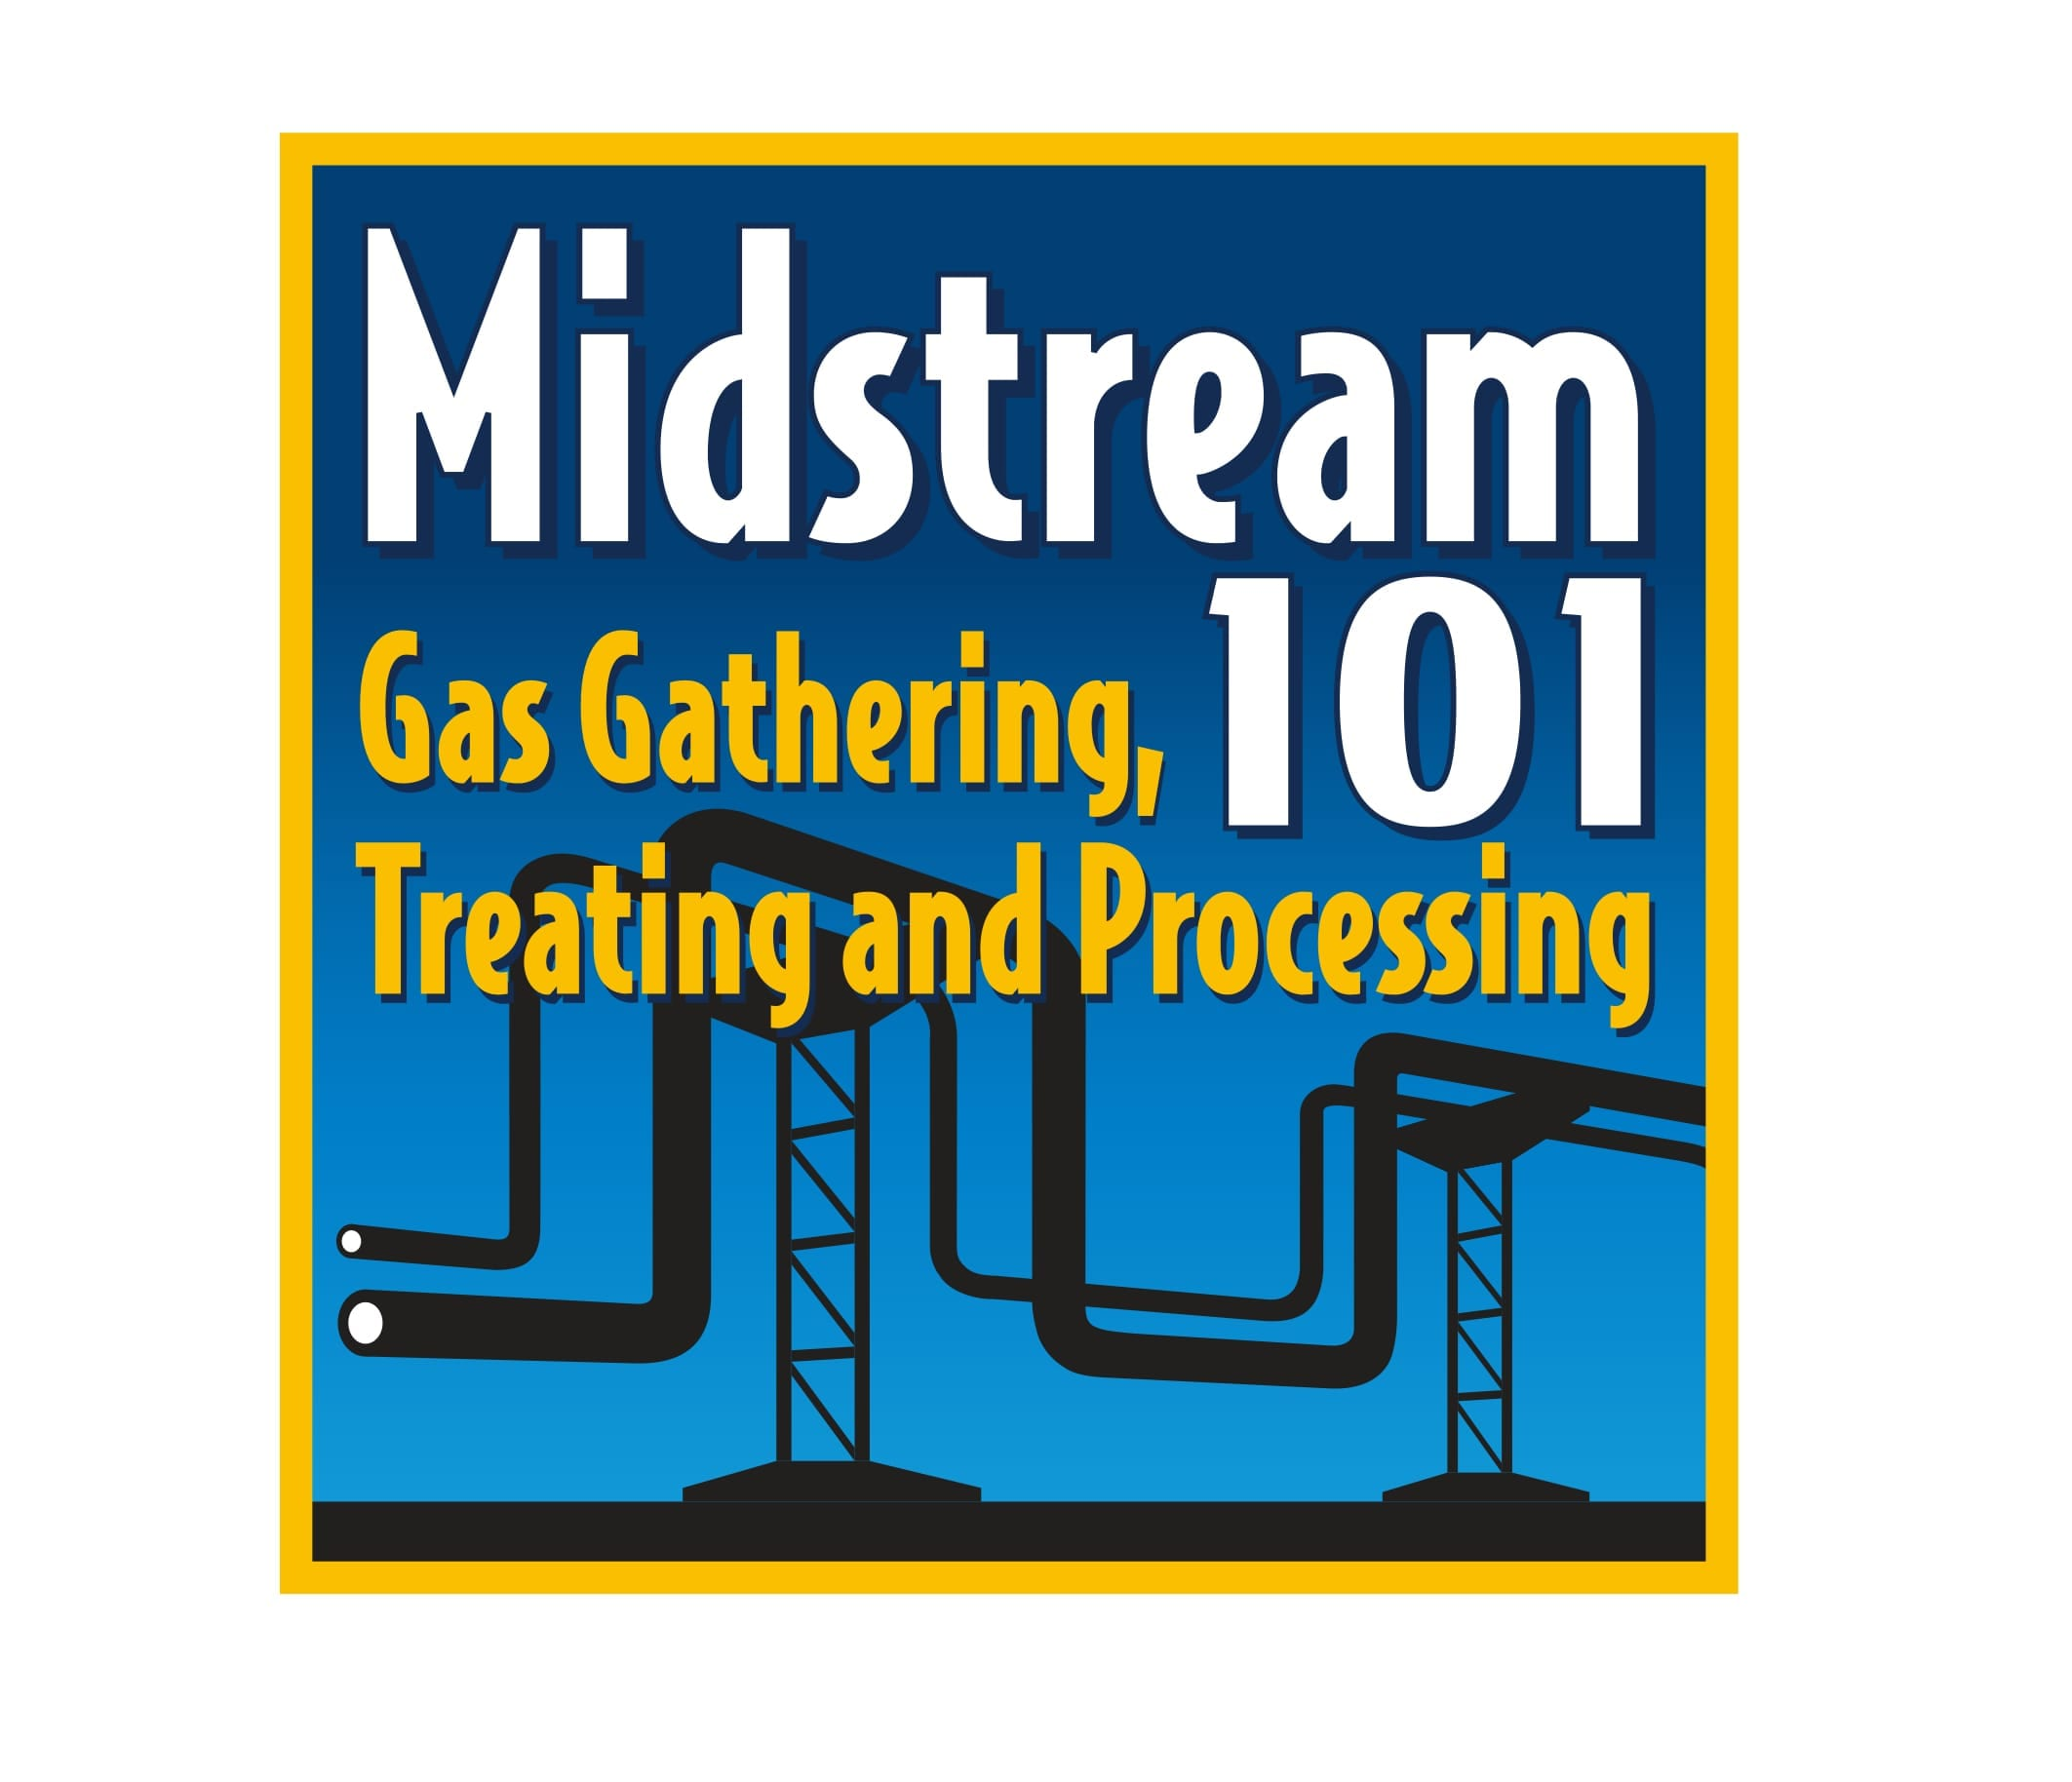 midstream 101